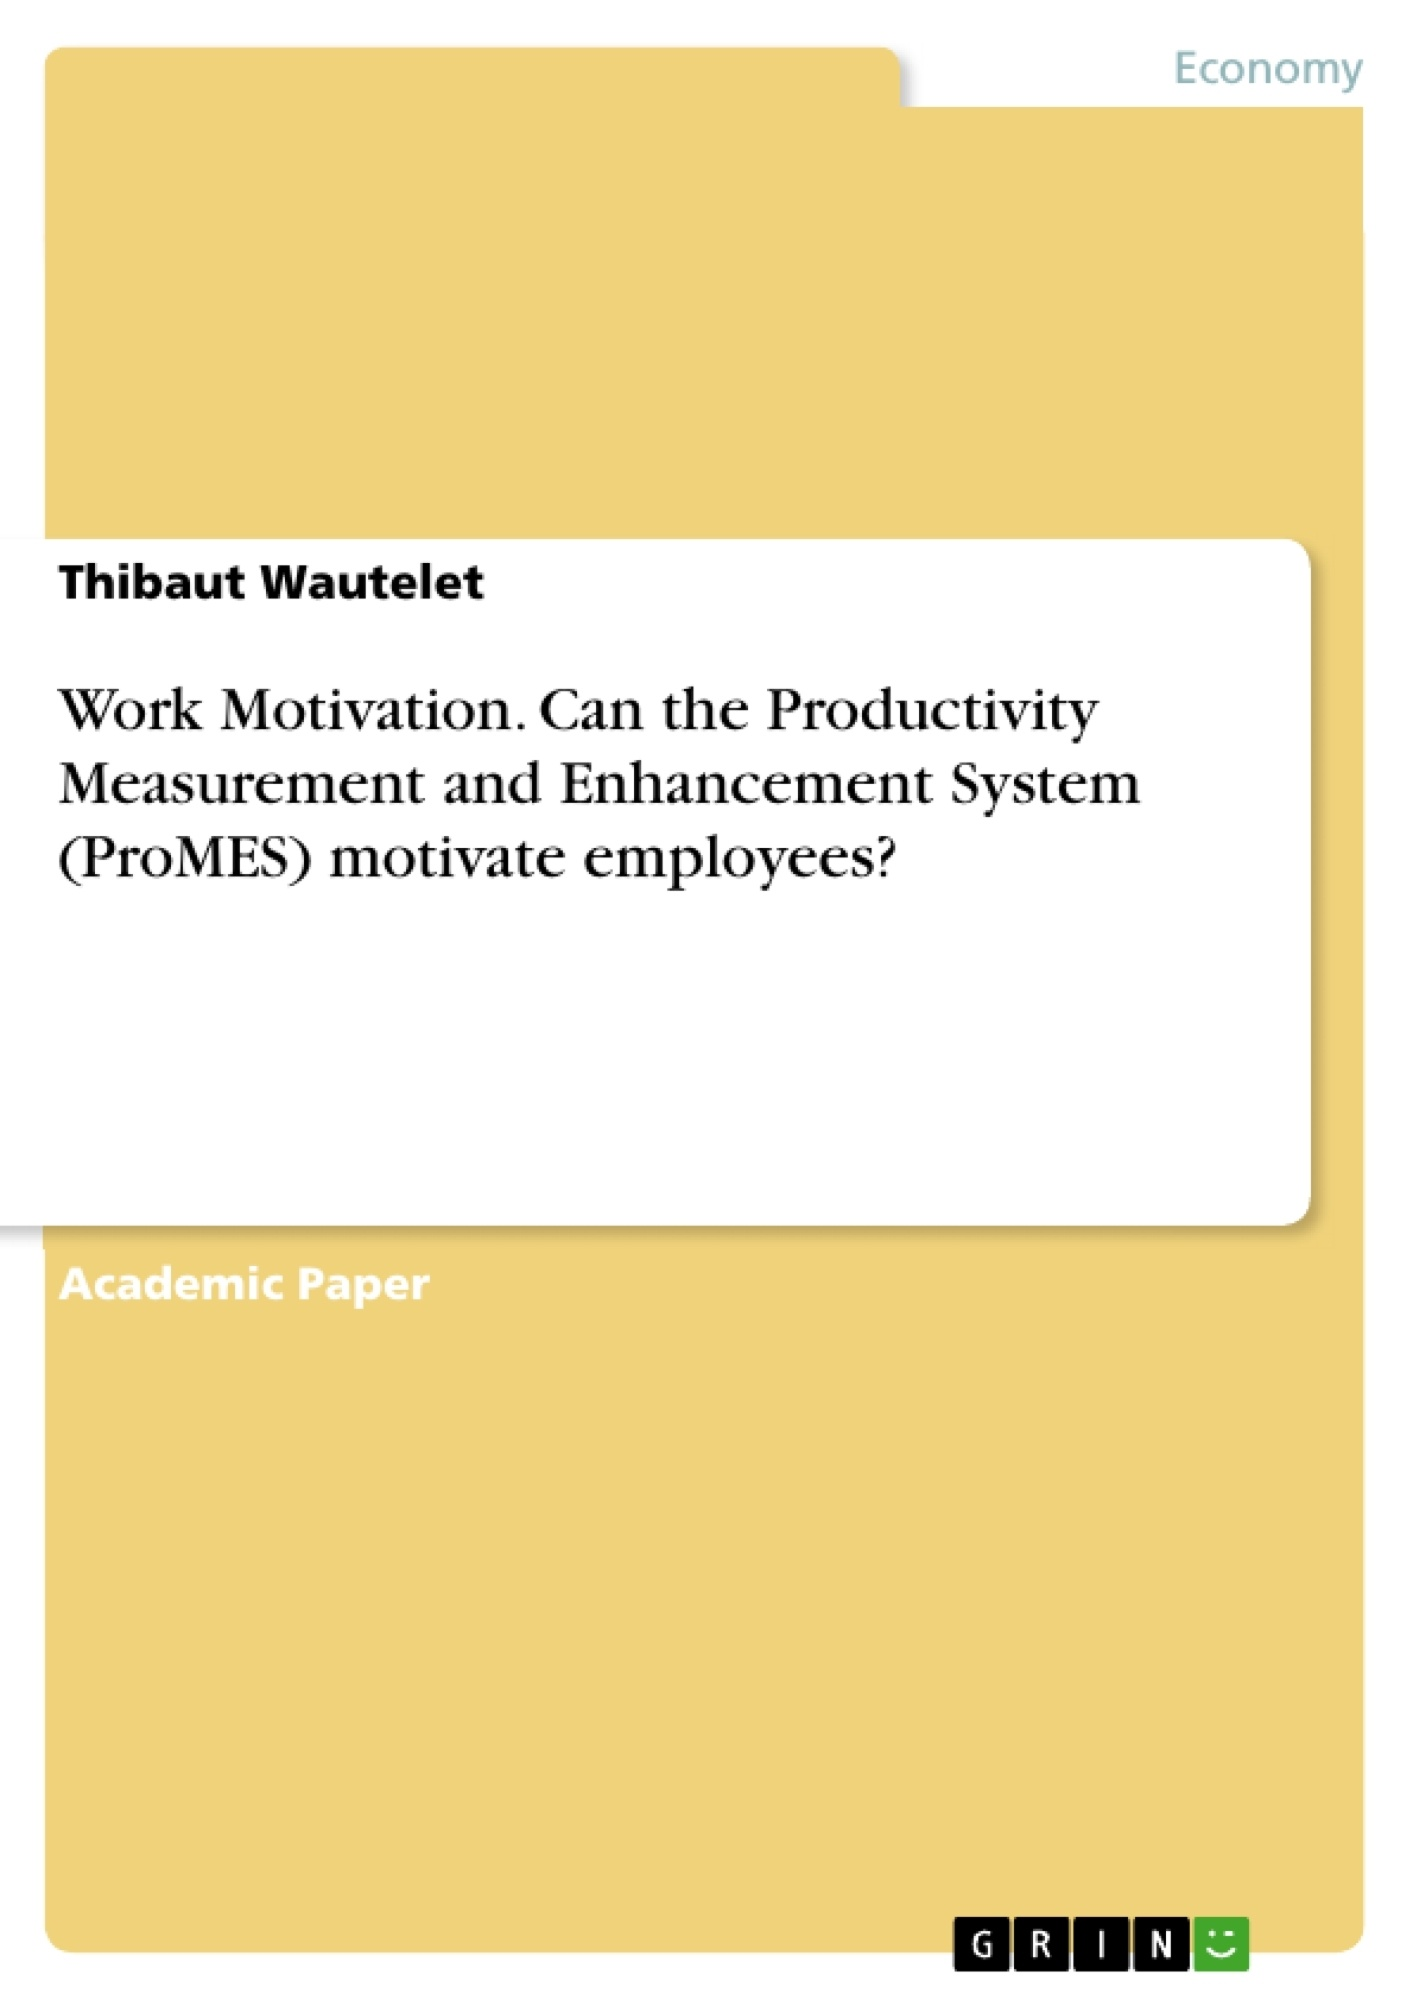 Title: Work Motivation. Can the Productivity Measurement and Enhancement System (ProMES) motivate employees?